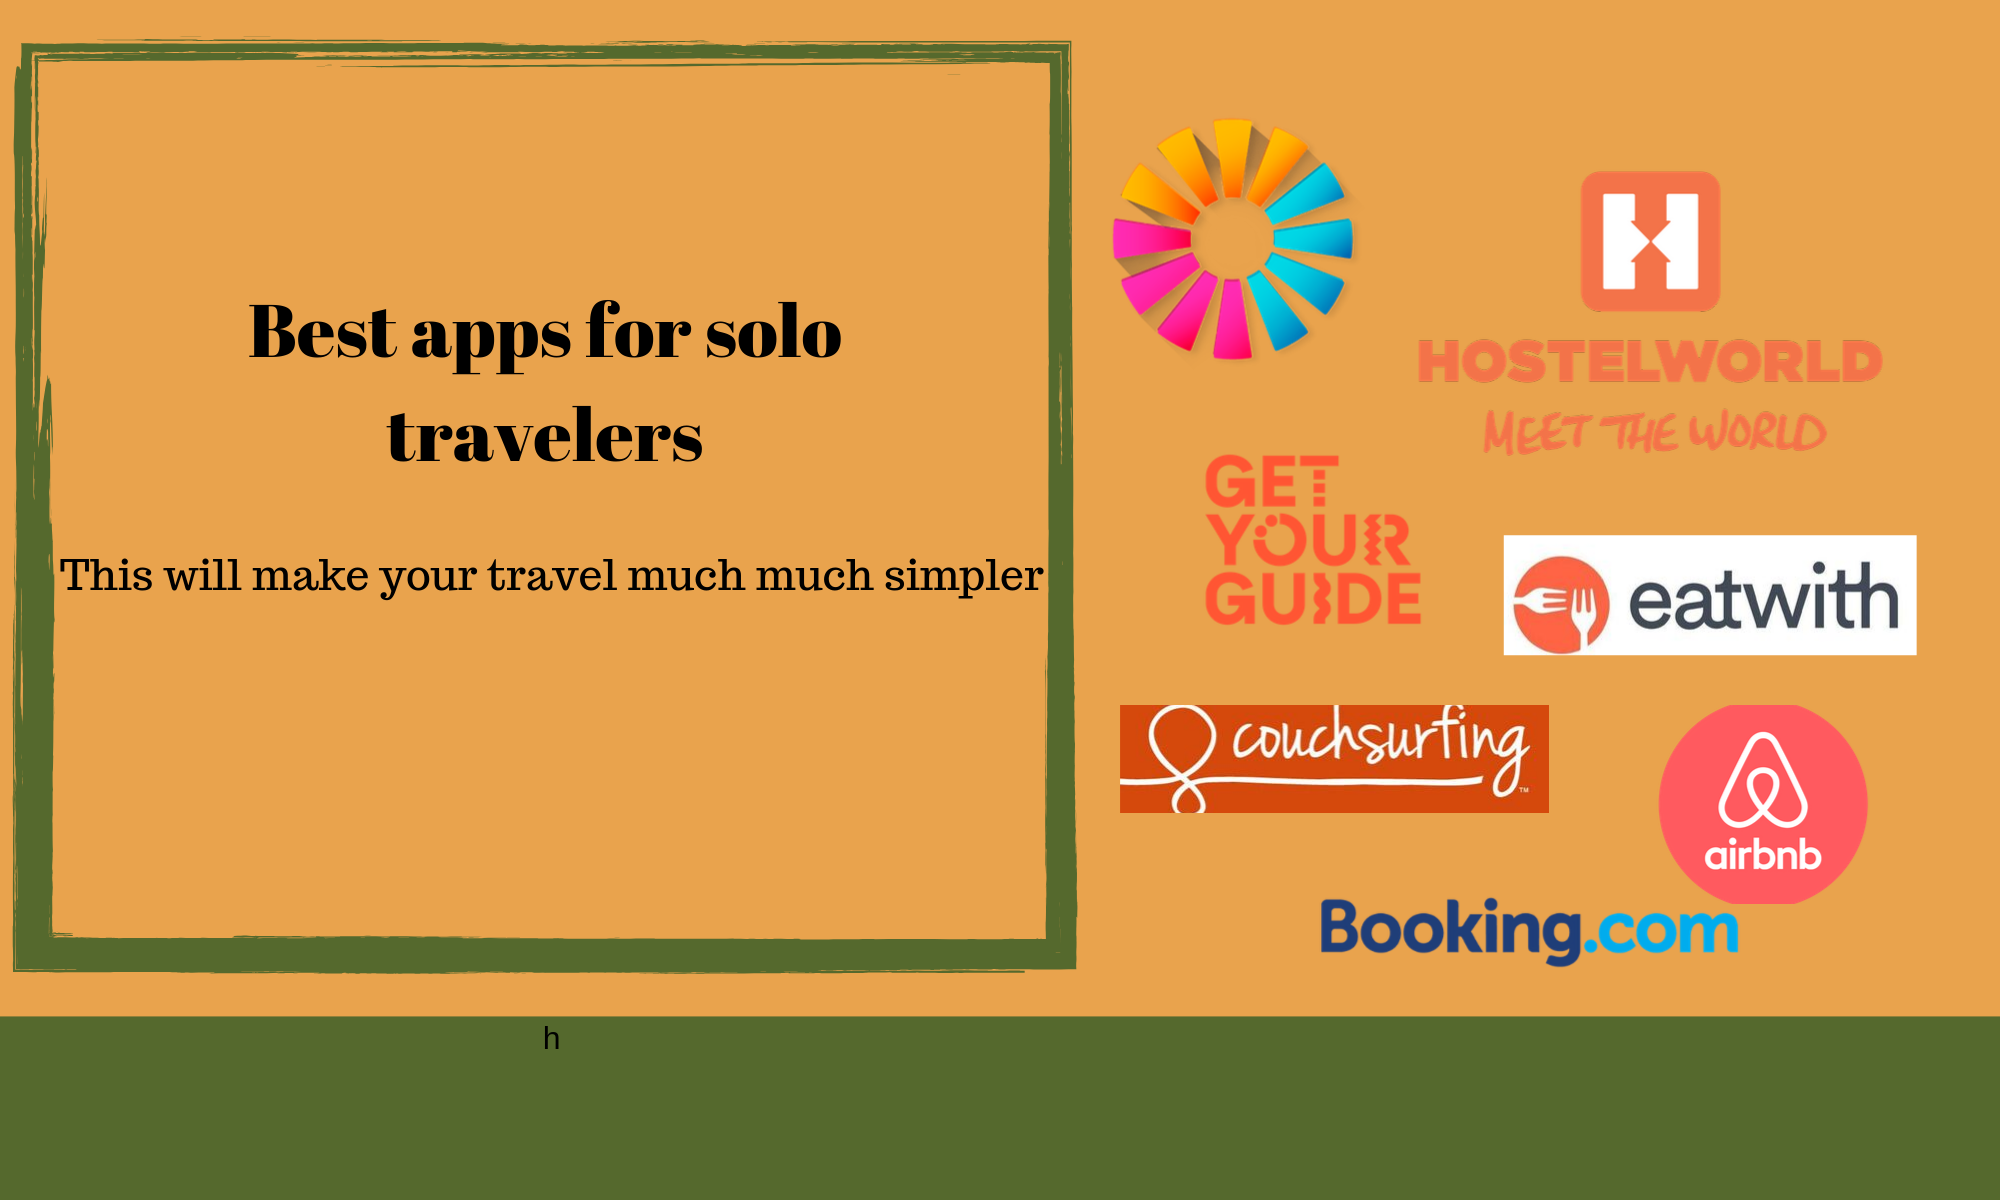 BEST APPS FOR SOLO TRAVELERS